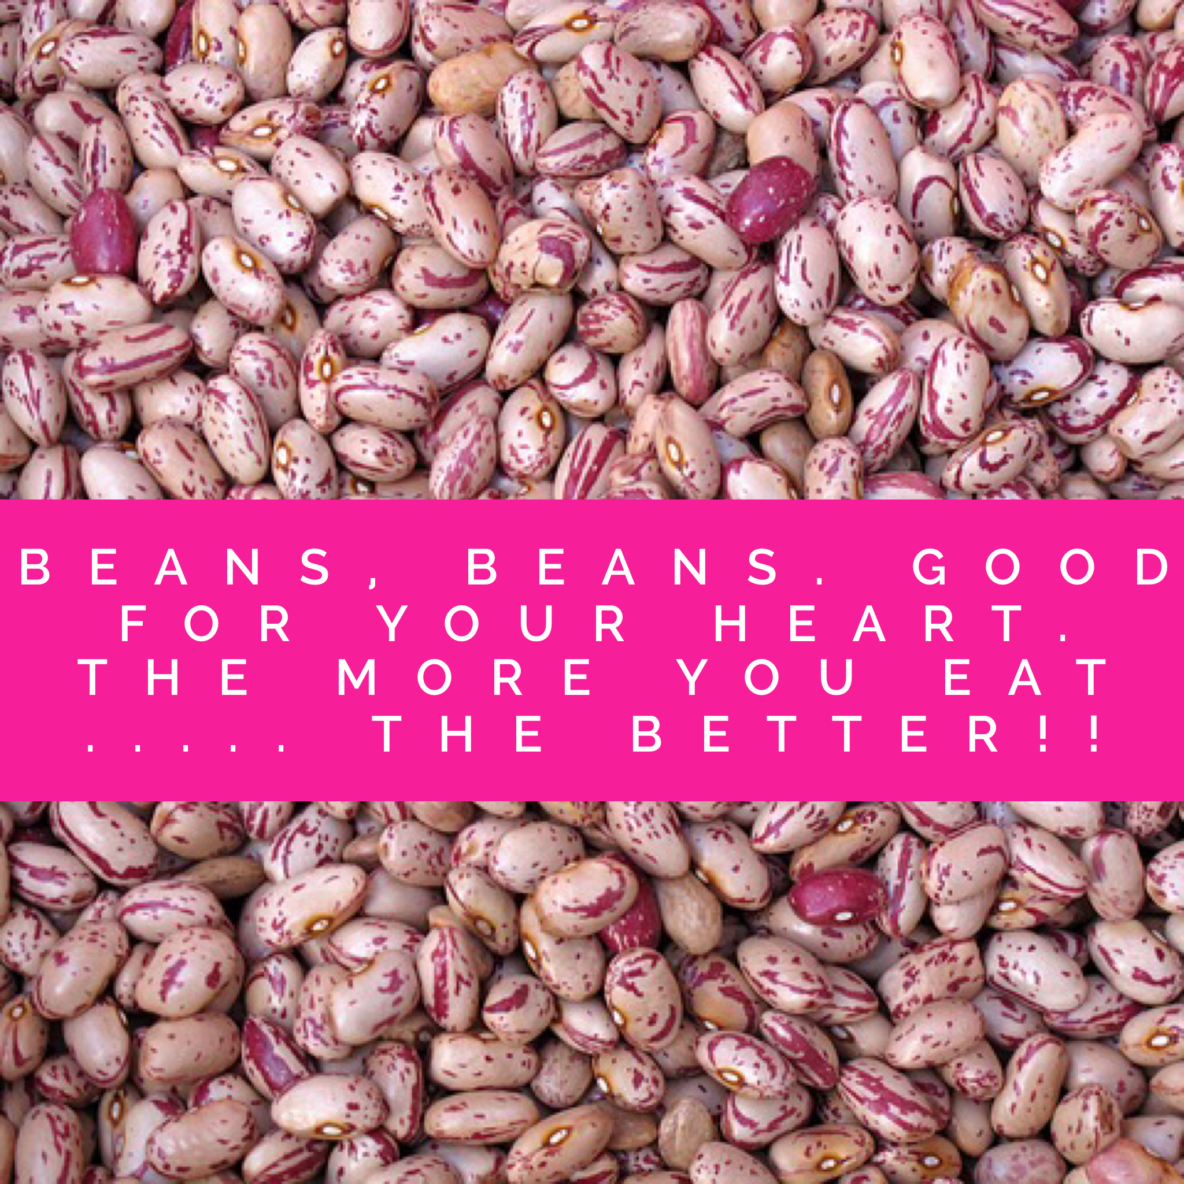 beans good for your heart